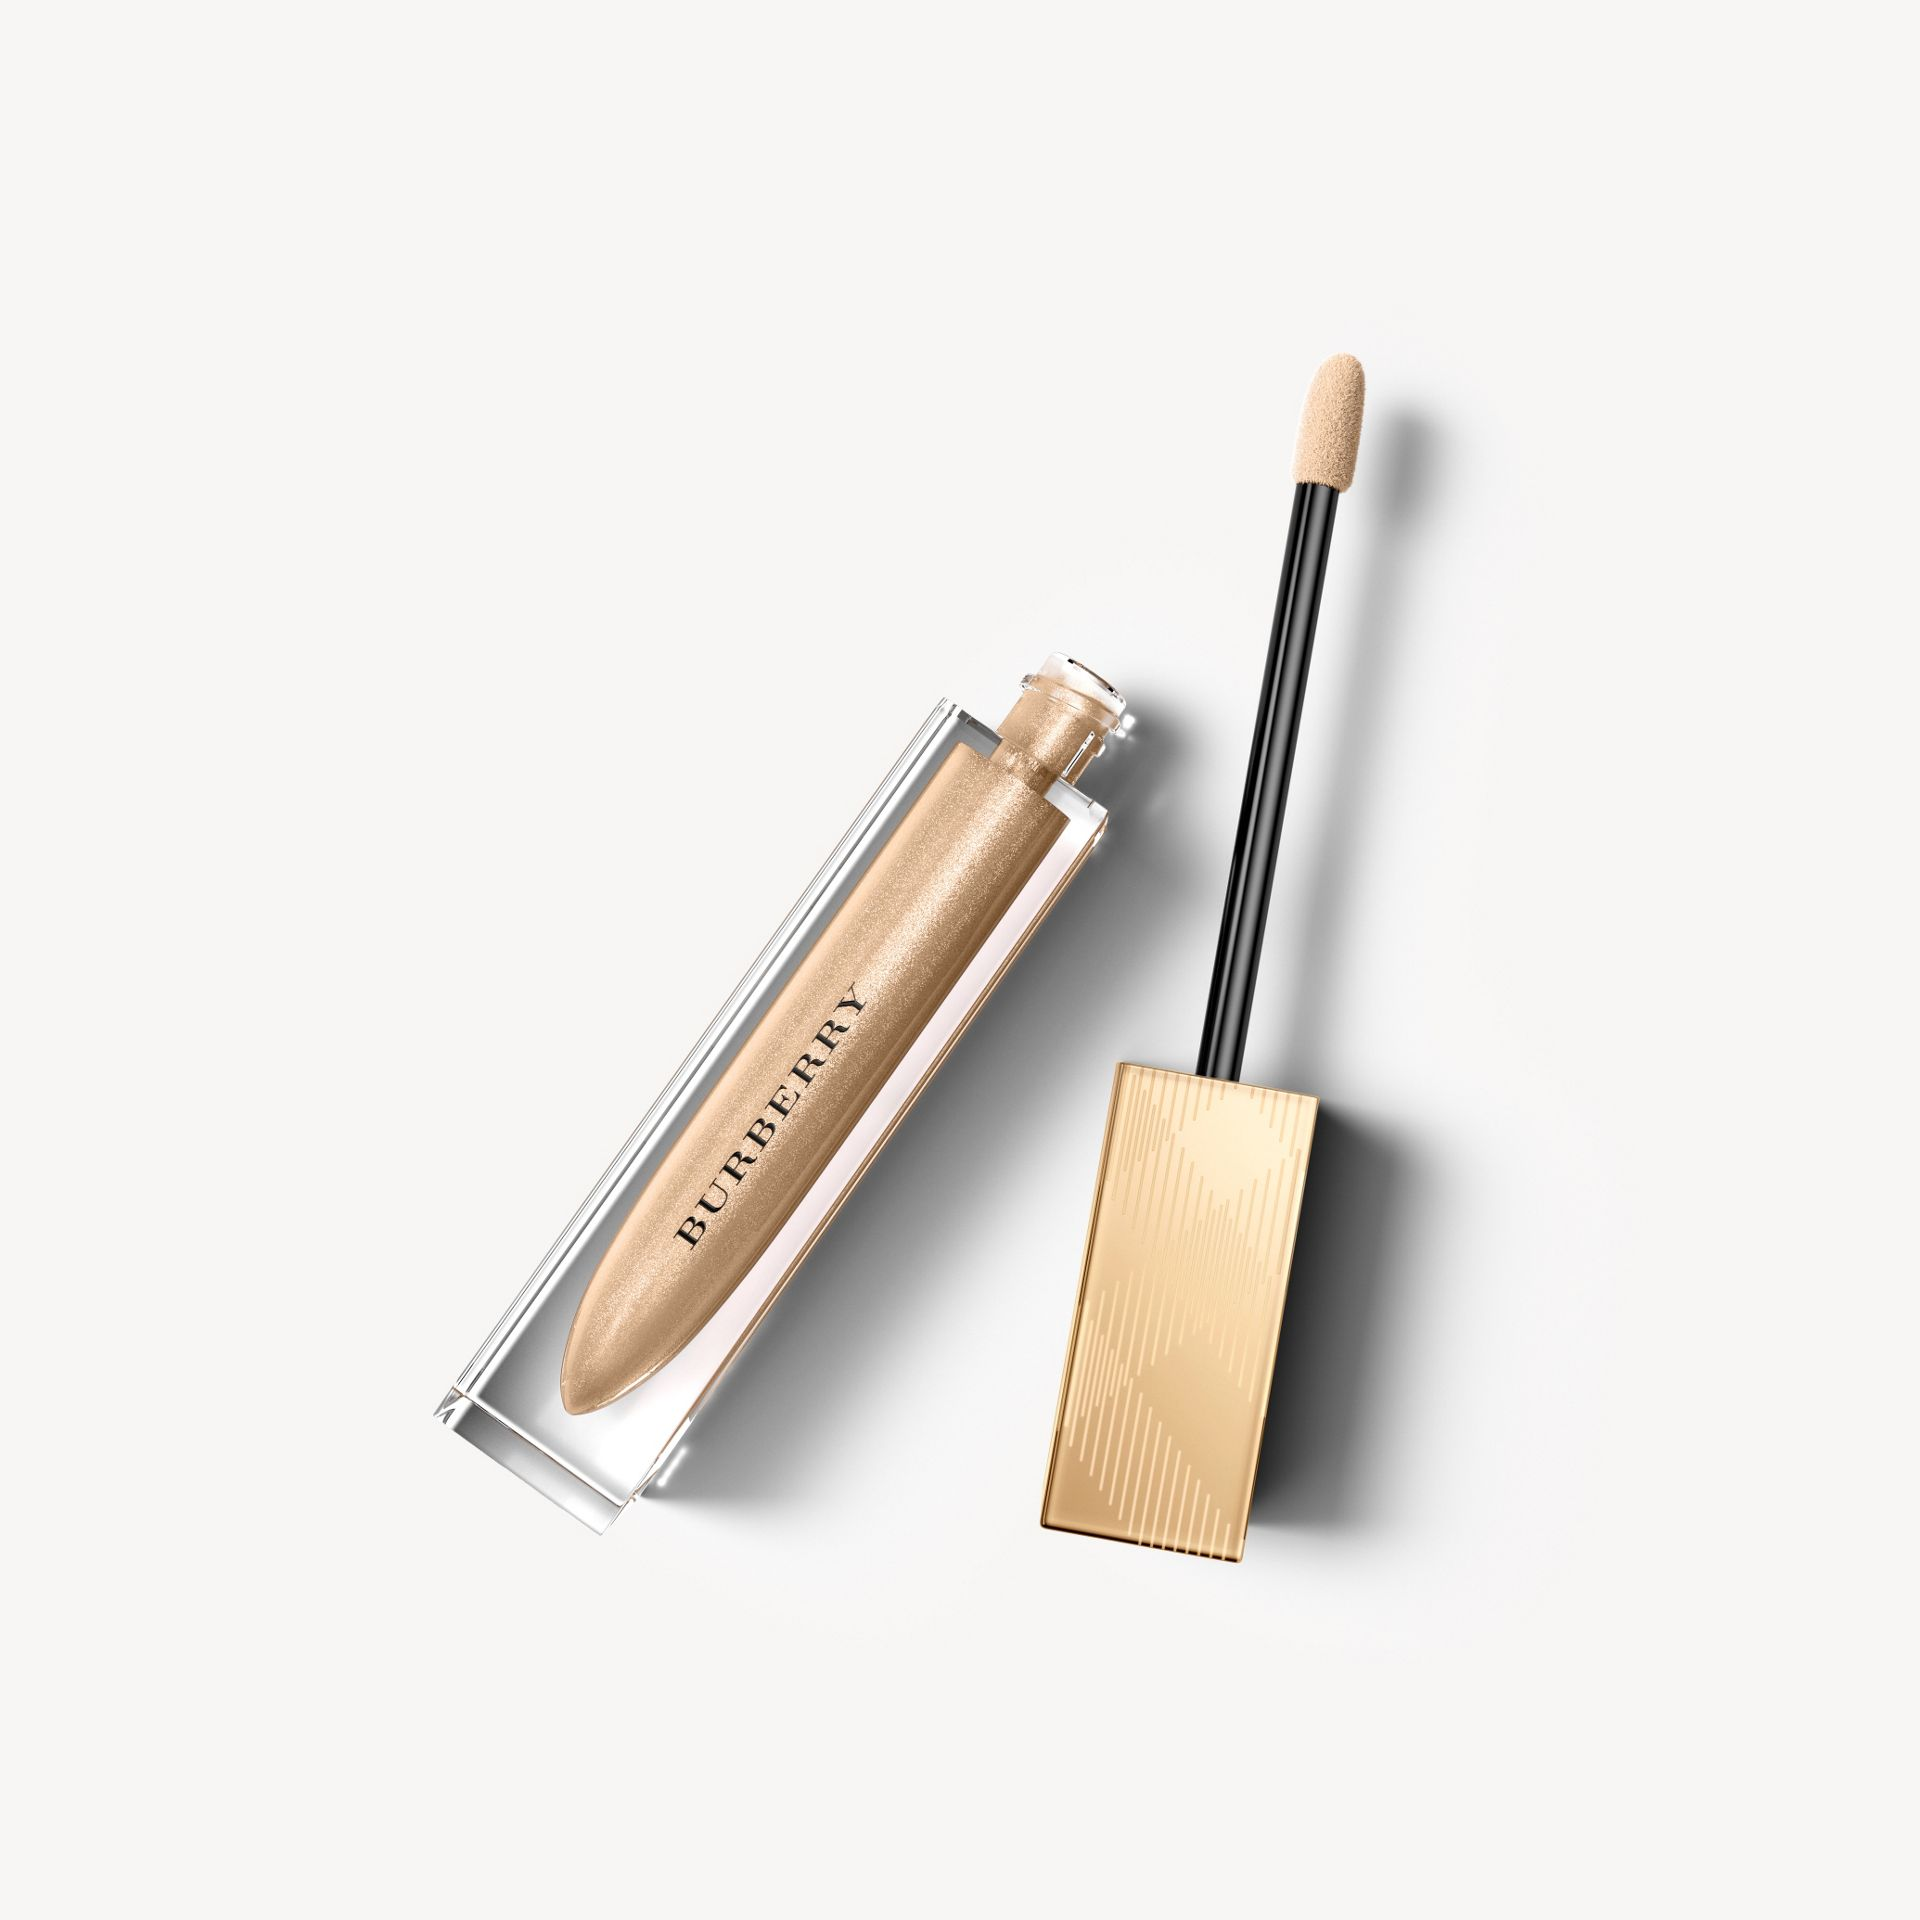 Burberry Kisses Gloss - Gold Shimmer No.124 - immagine della galleria 1